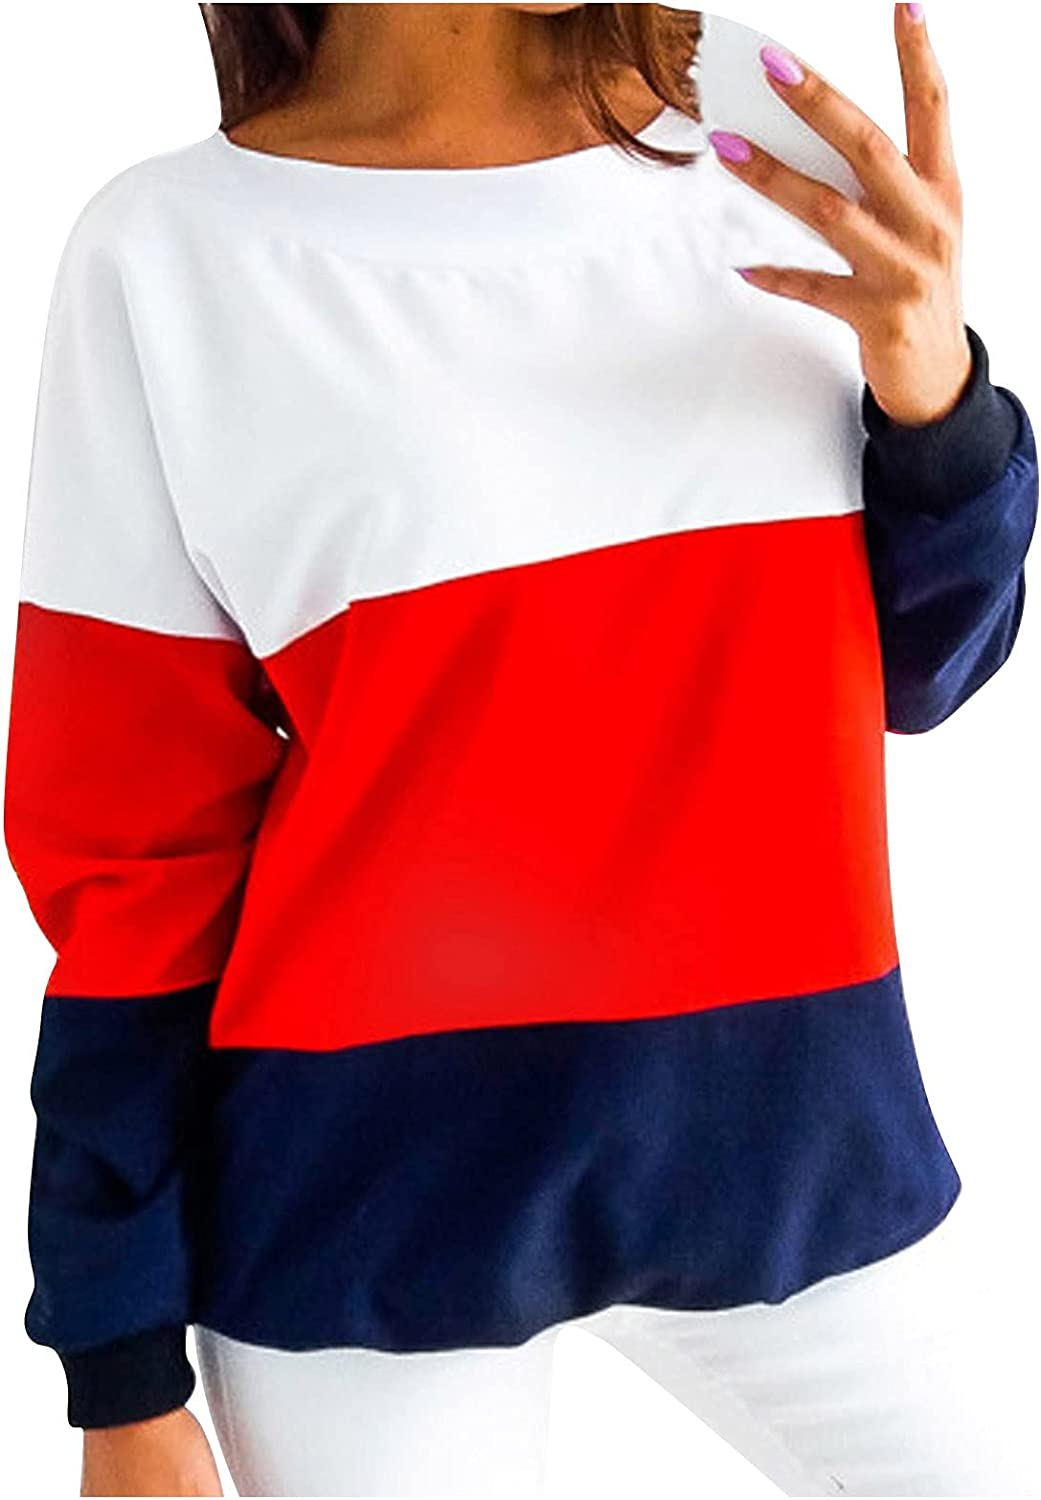 Women's Casual Crewneck Patchwork Sweatshirt Fashion Loose Fit Long Sleeve Oversize Color Block Pullover Tunic Tops